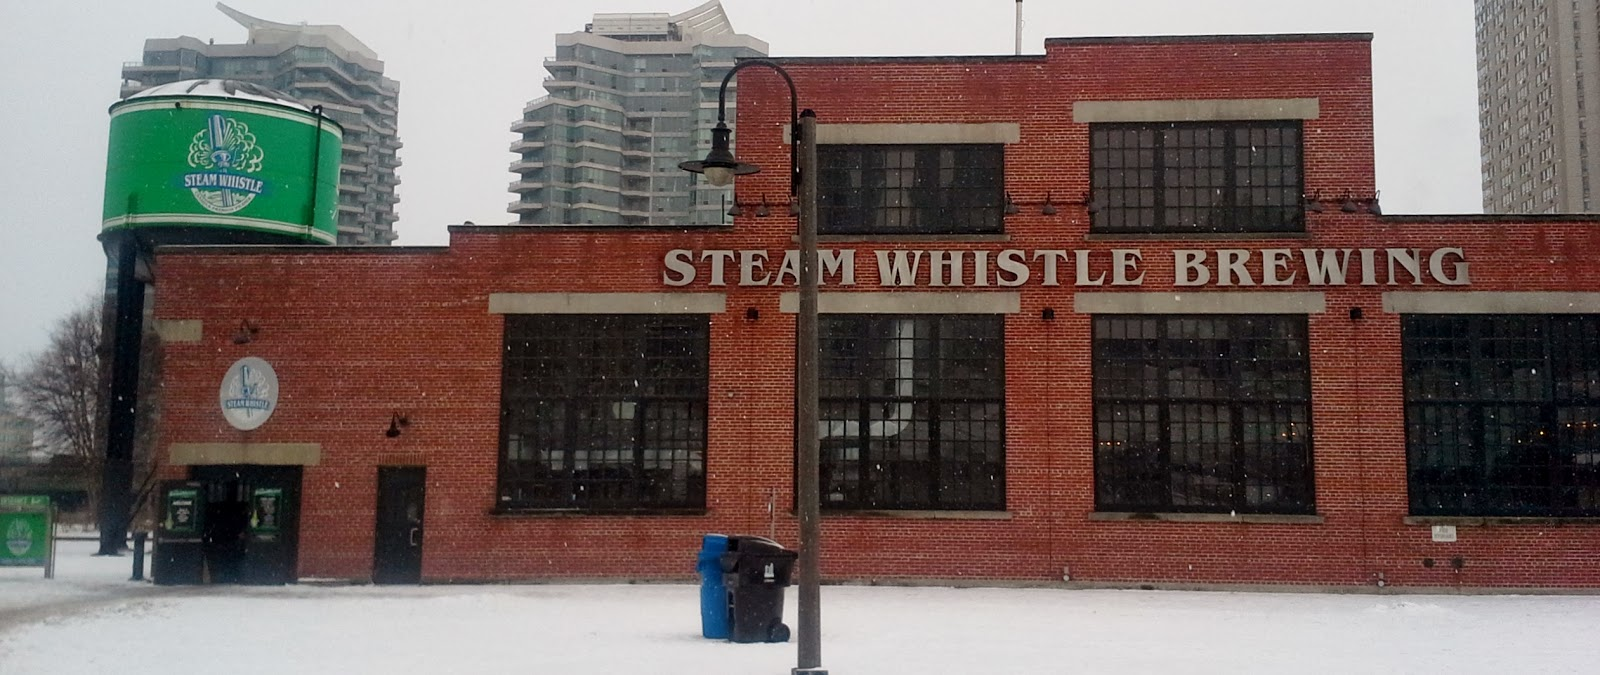 Steam Whistle Winter Farmers Market in Toronto Beer brewery lifestyle fashionblogger event food fresh fruit meats and cheeses every Suday